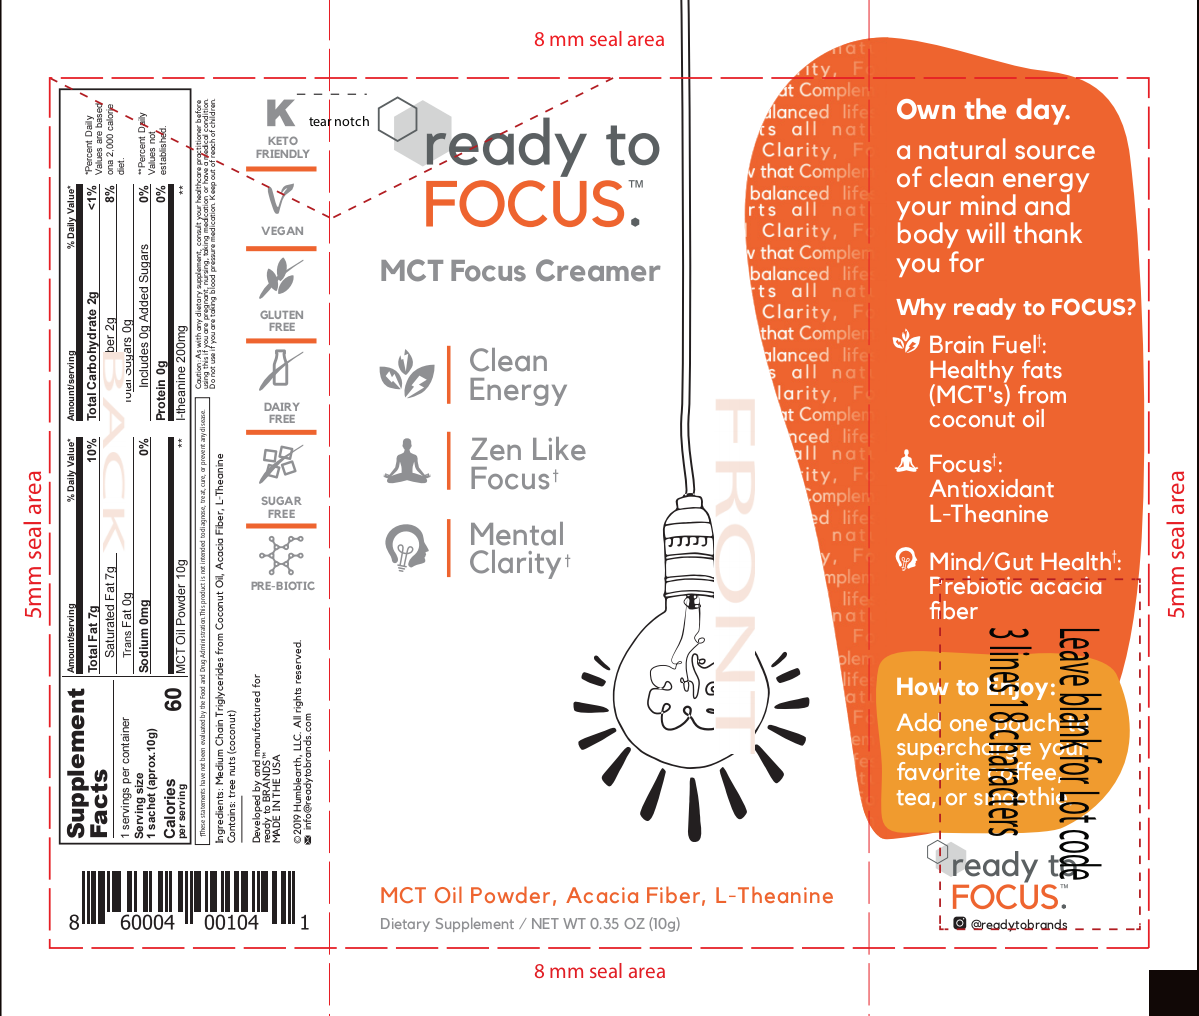 ready to FOCUS - Single Serving Design